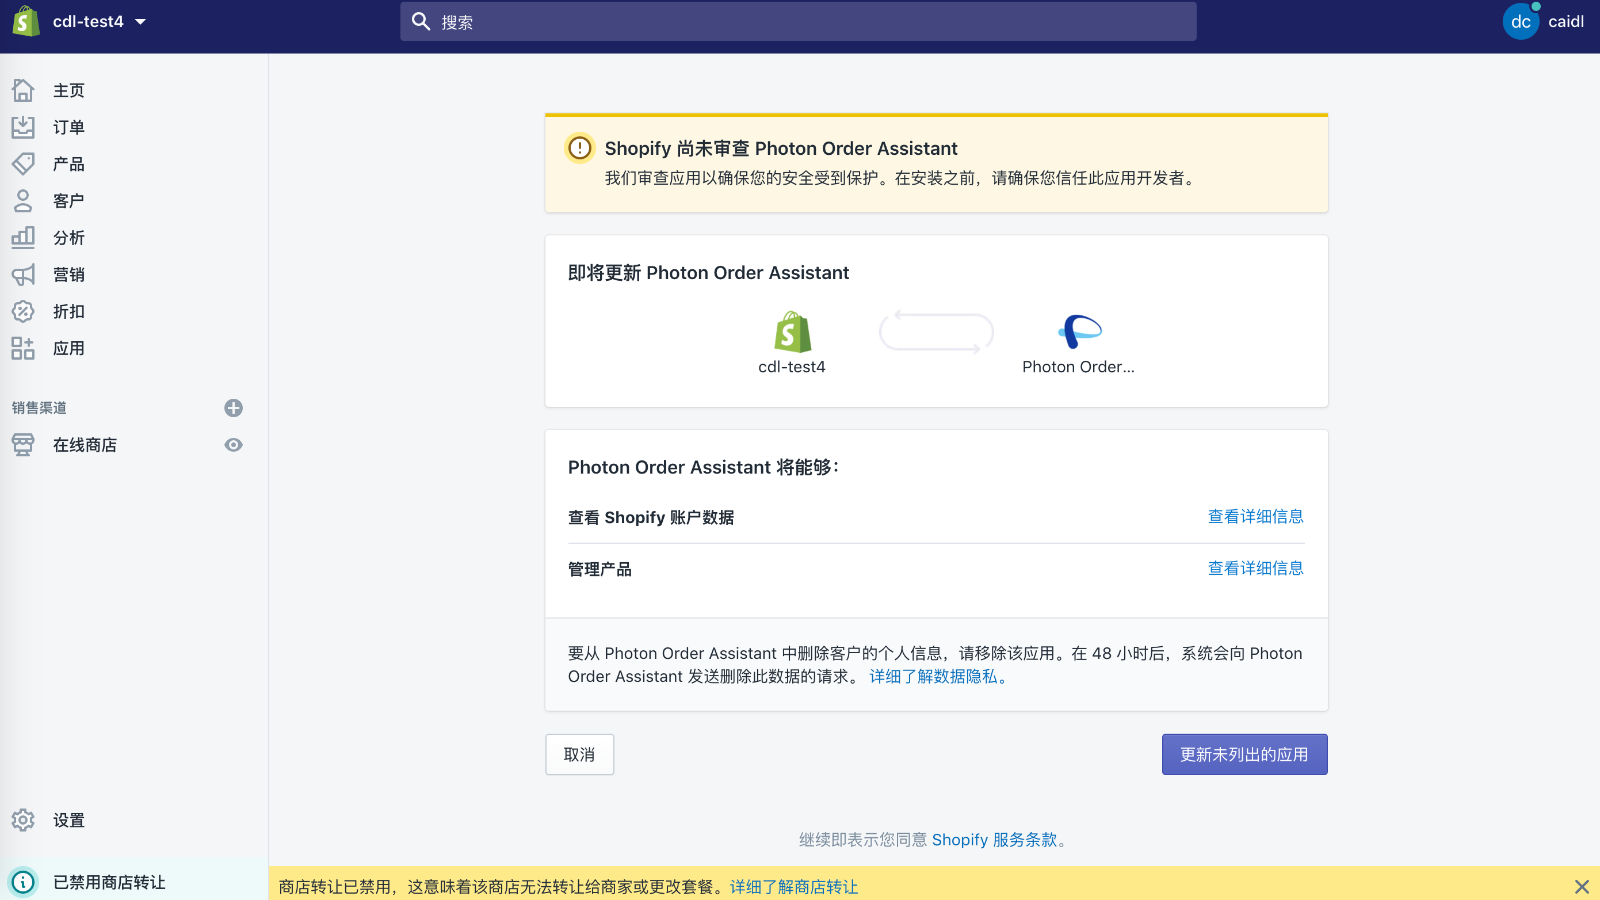 install Photon Order Assistant